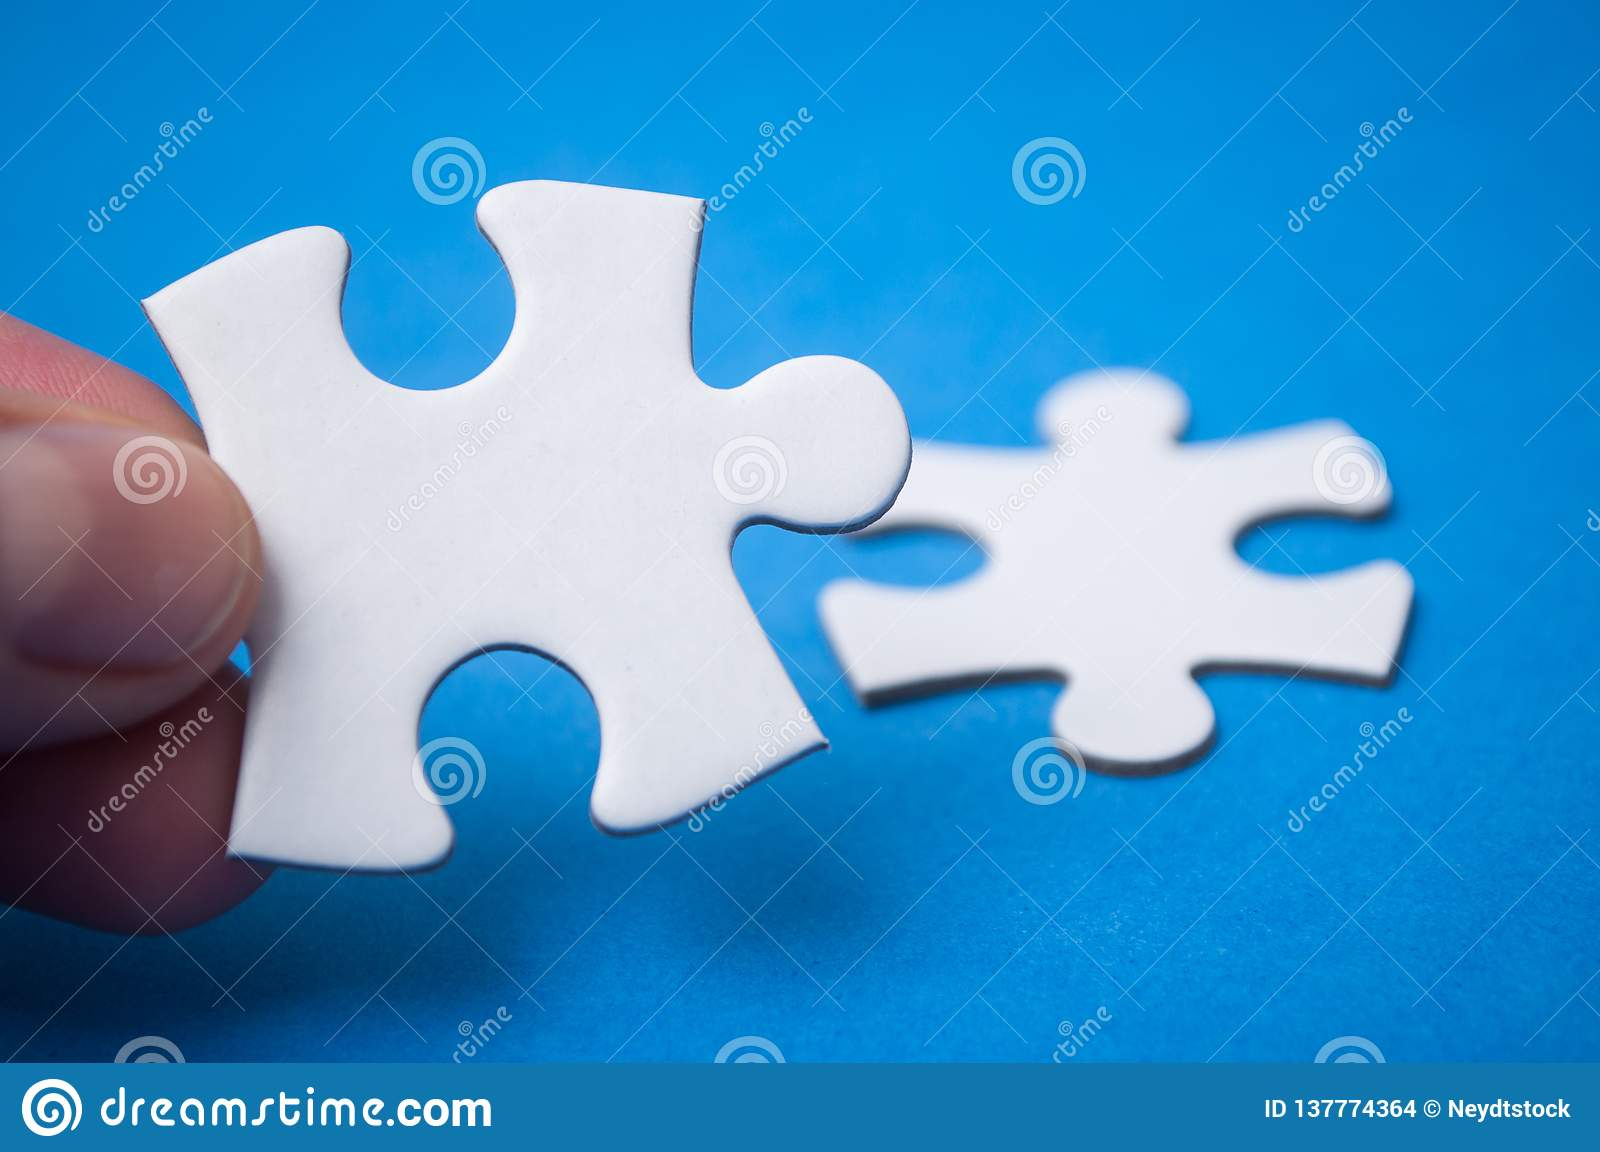 man connecting with hand two jigsaw puzzle pieces on blue background. The concept of finding the right solutions in